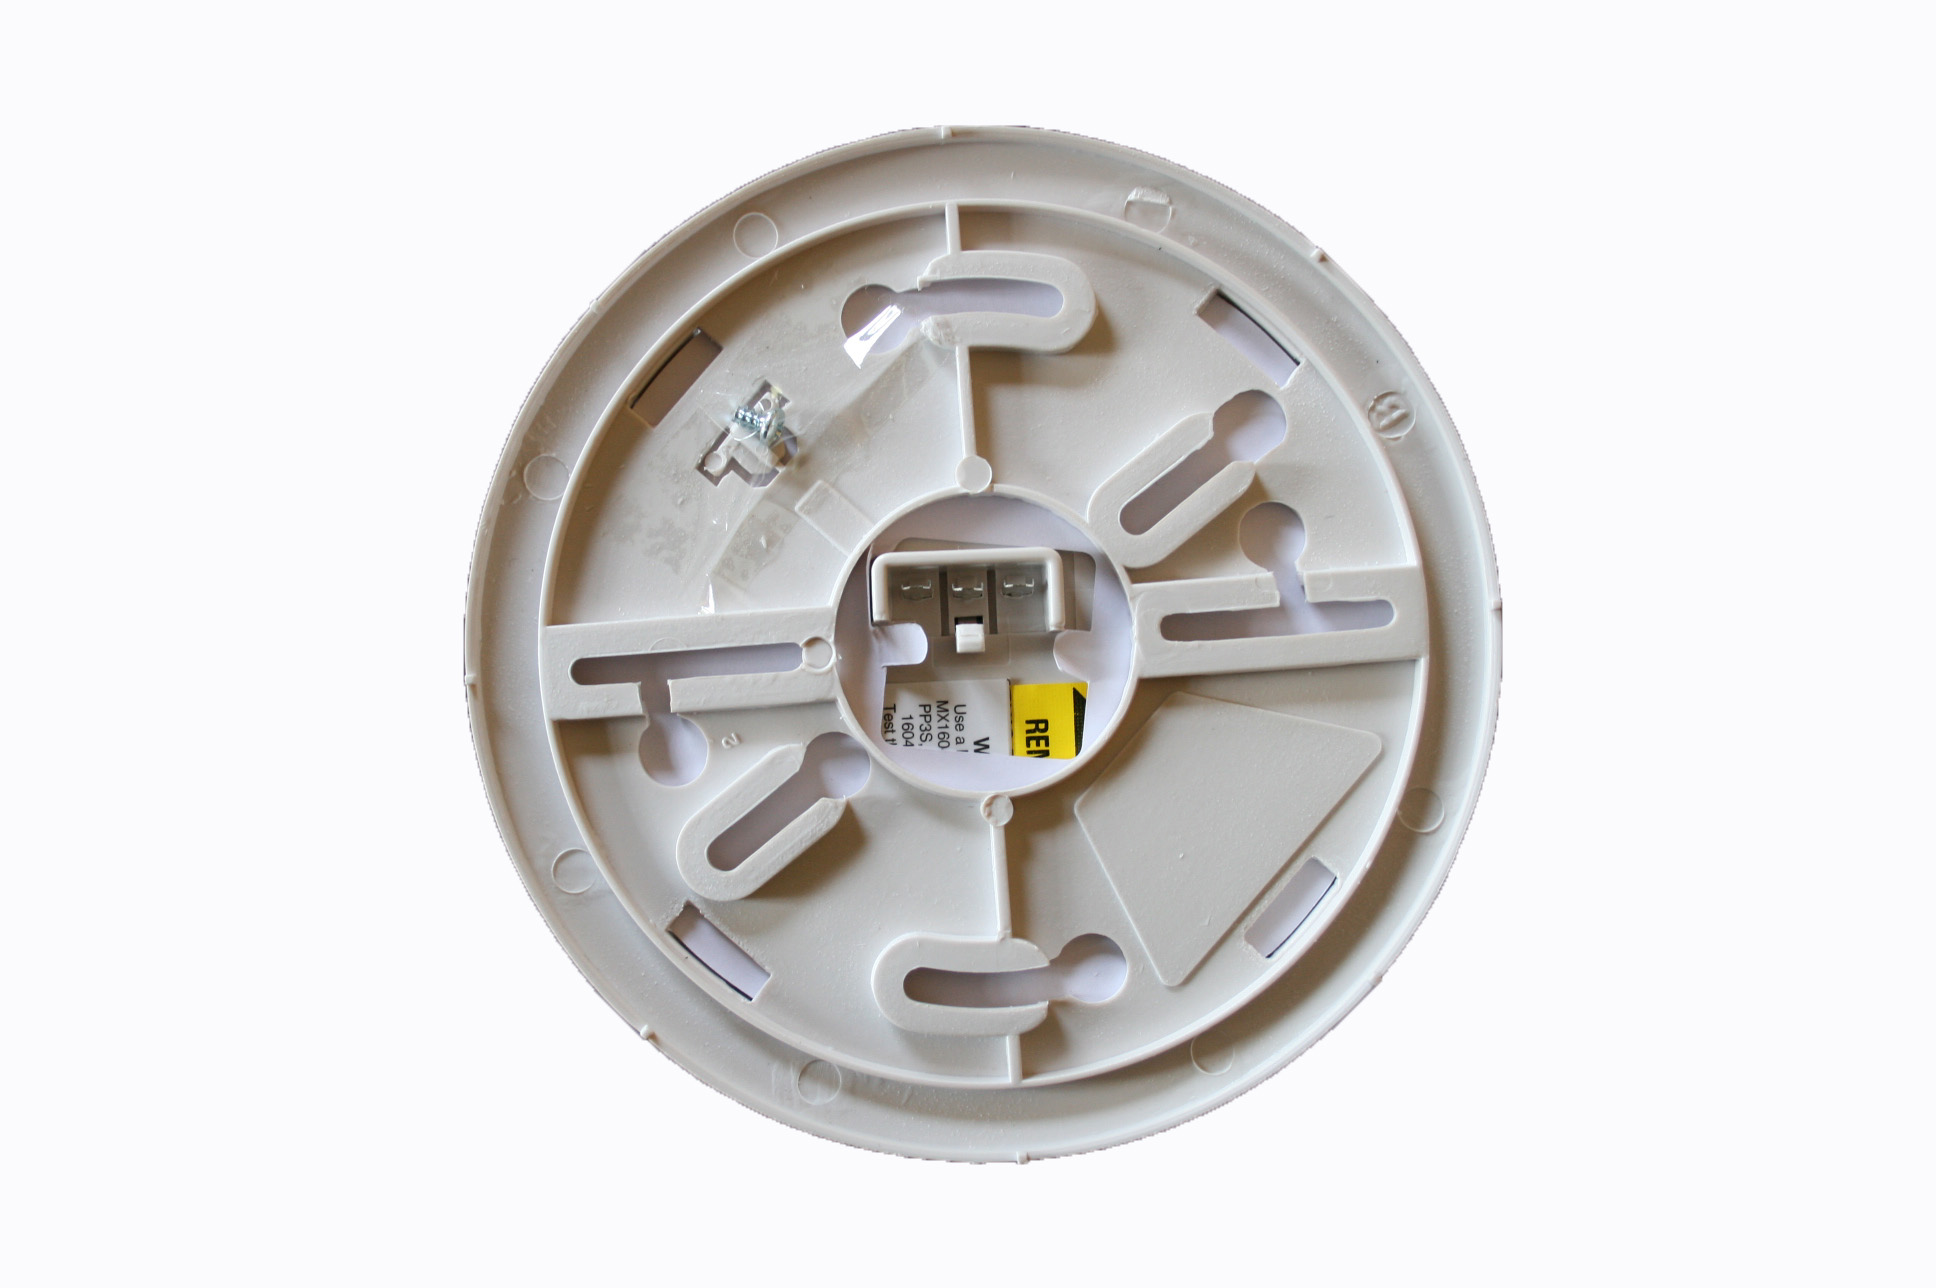 Dicon BRK 670MBX Mains Powered Smoke Alarm with 9v Battery